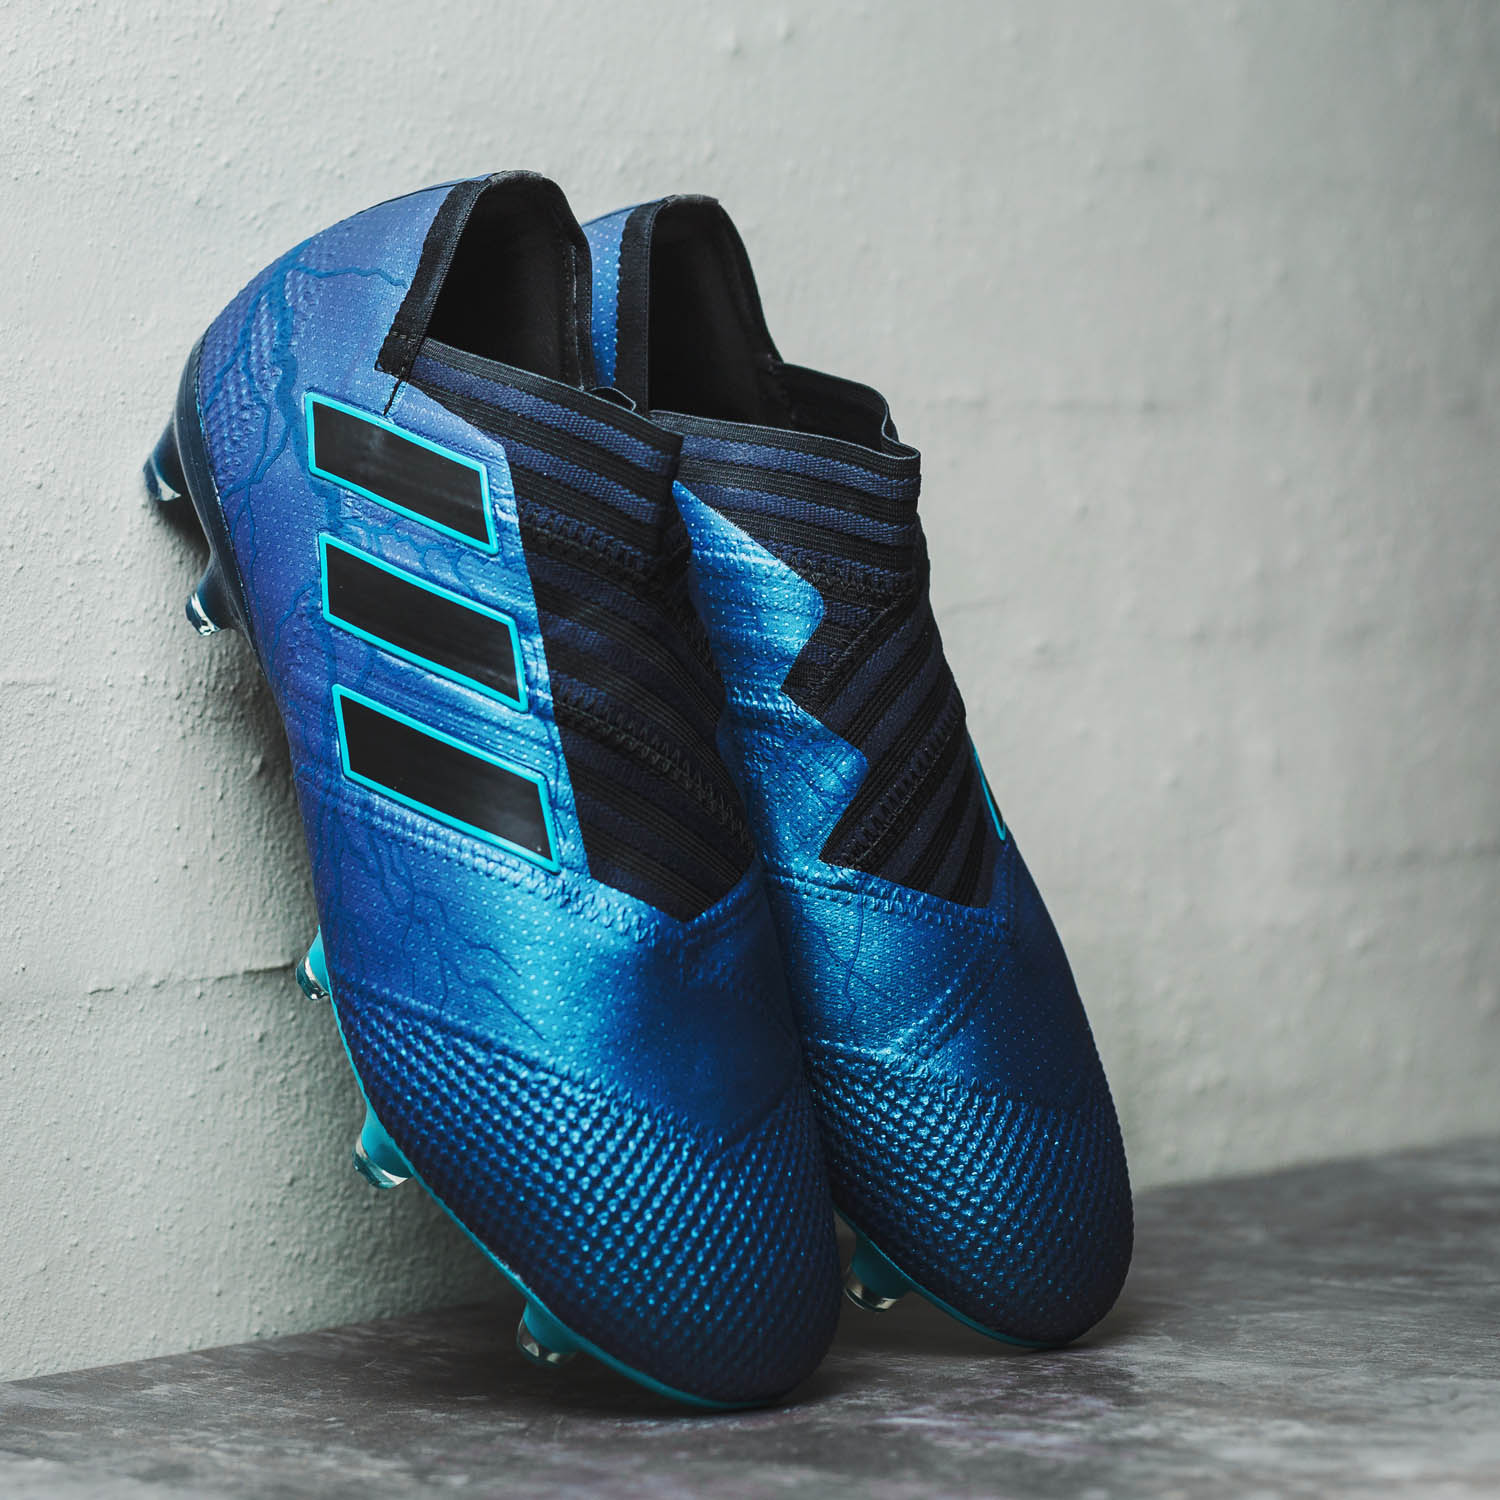 753a09ab2ccb Featuring the same colors as the Adidas Ace 17+ Purecontrol soccer cleats  from the collection